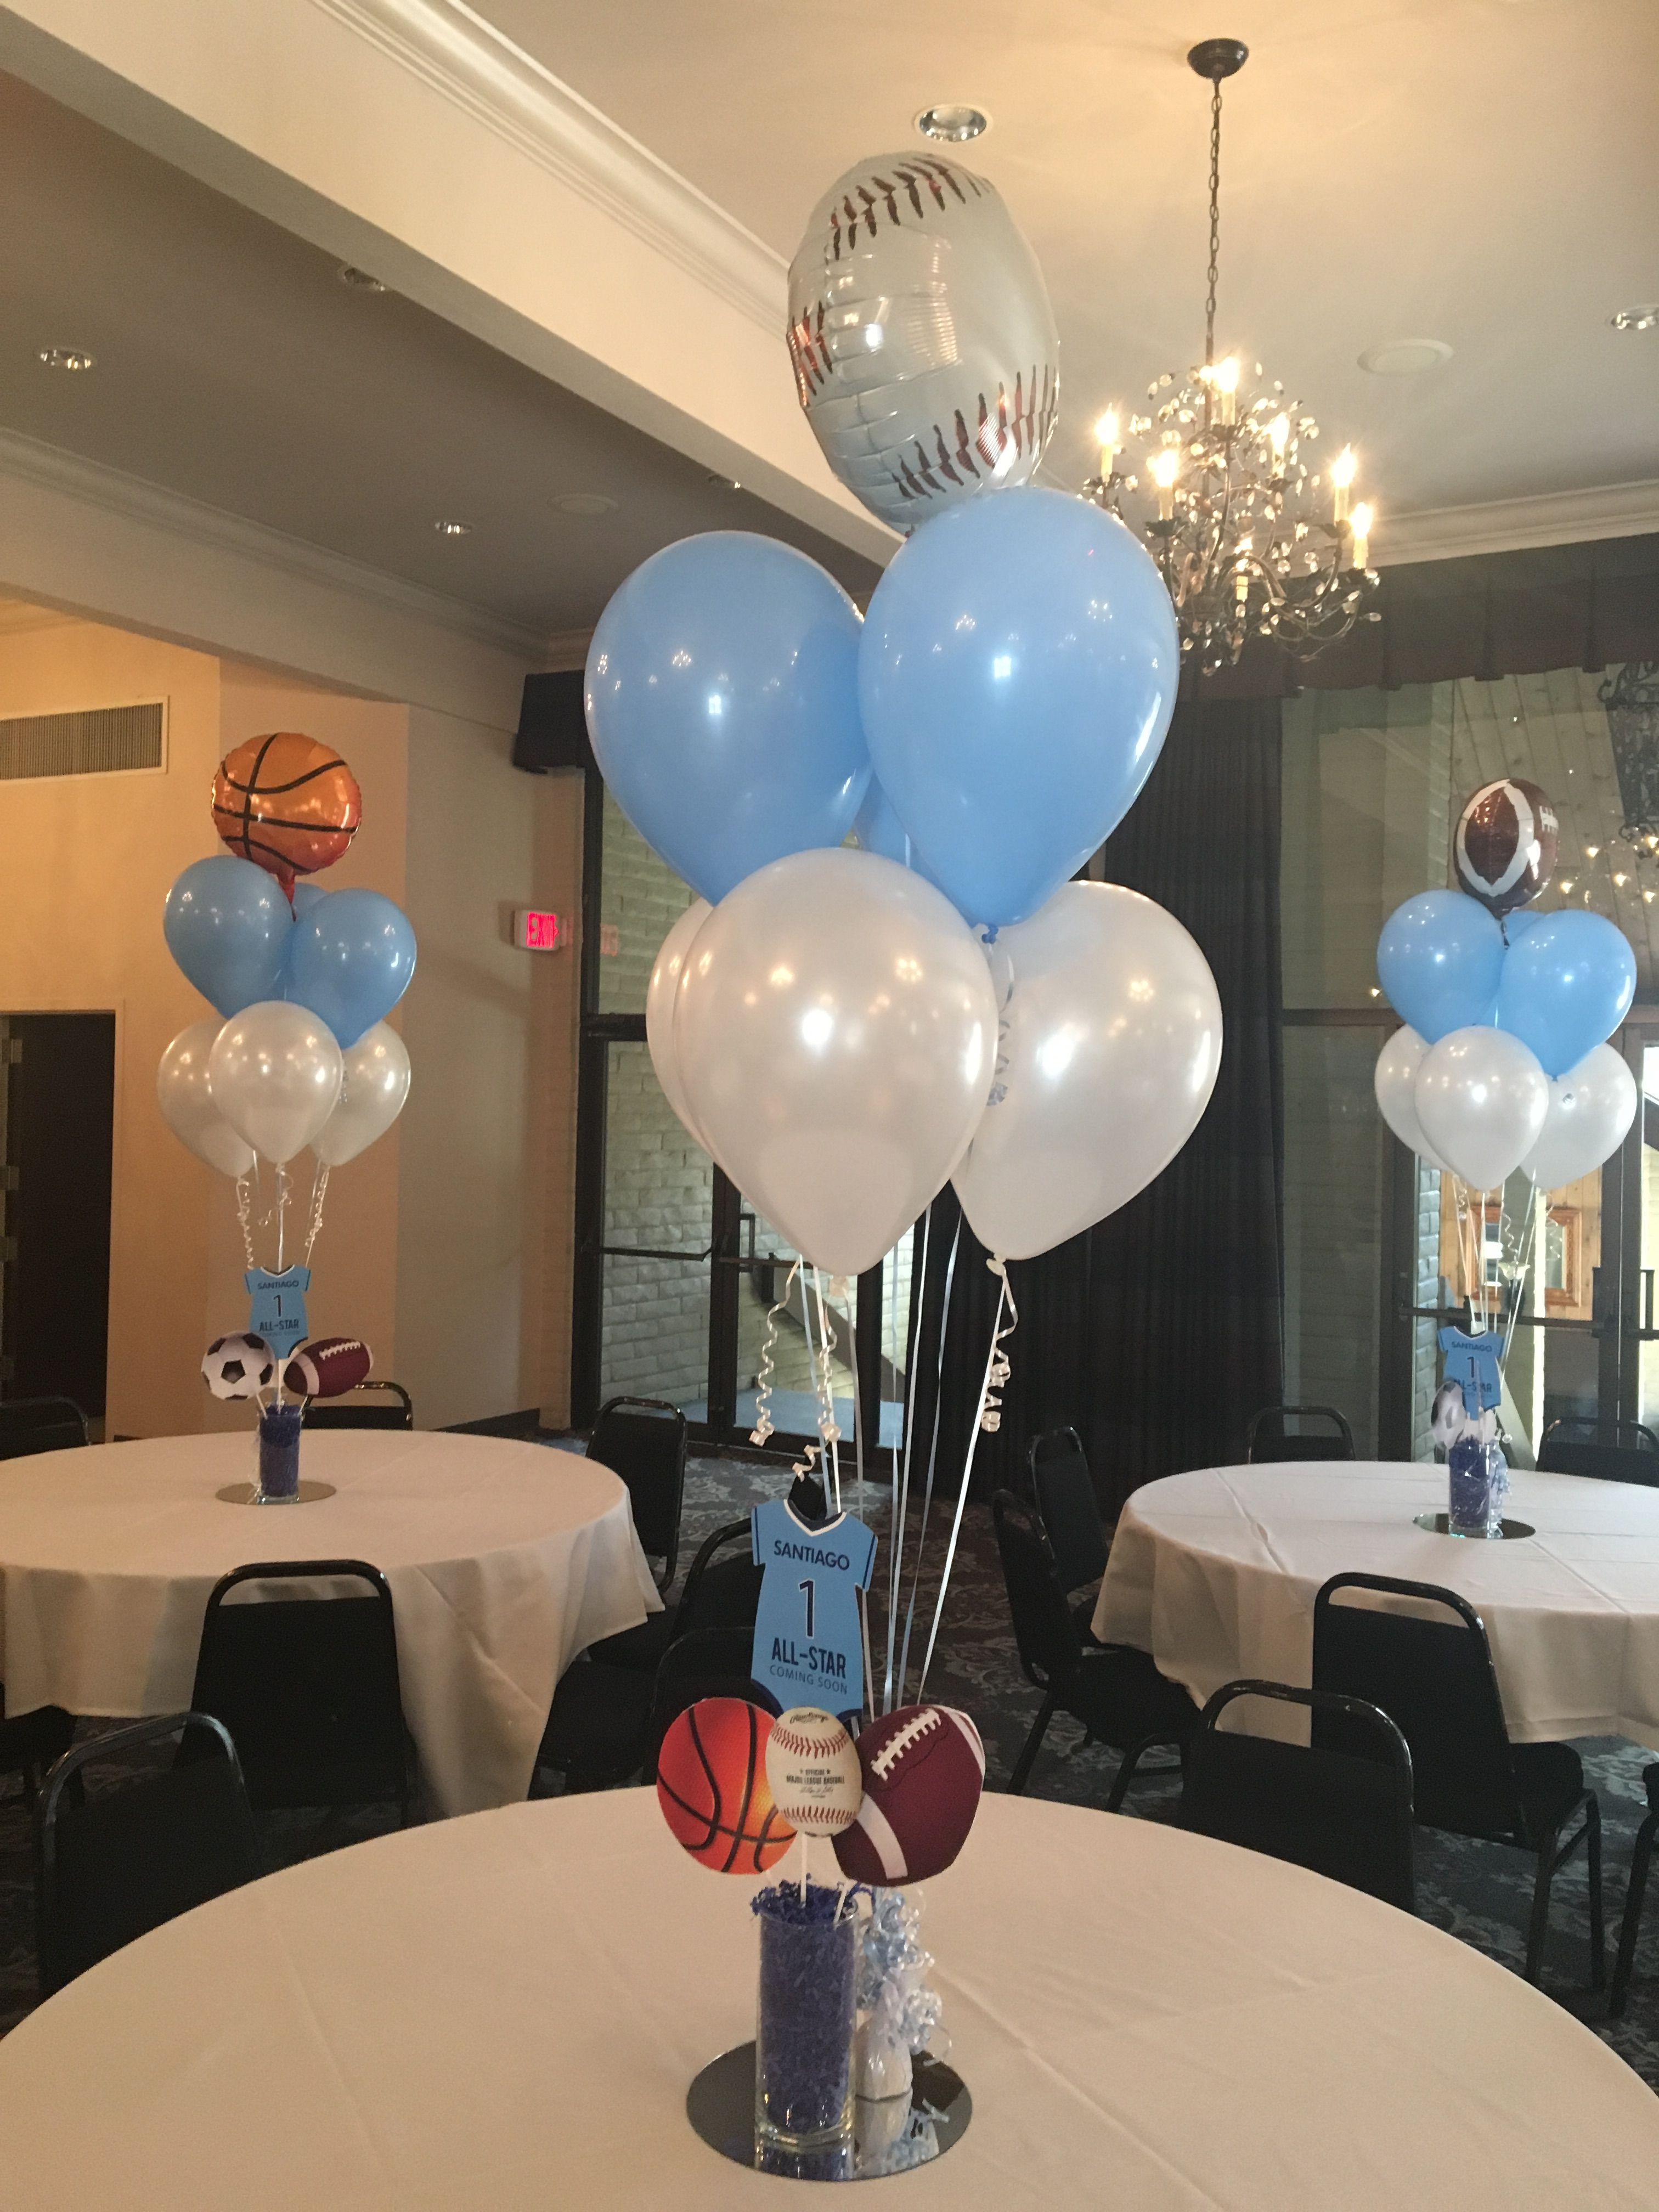 Sports Theme Baby Shower · Baby shower balloons Boy Babyshower  Centerpieces, Baby Boy Babyshower Themes, Baby Shower Favors Boy